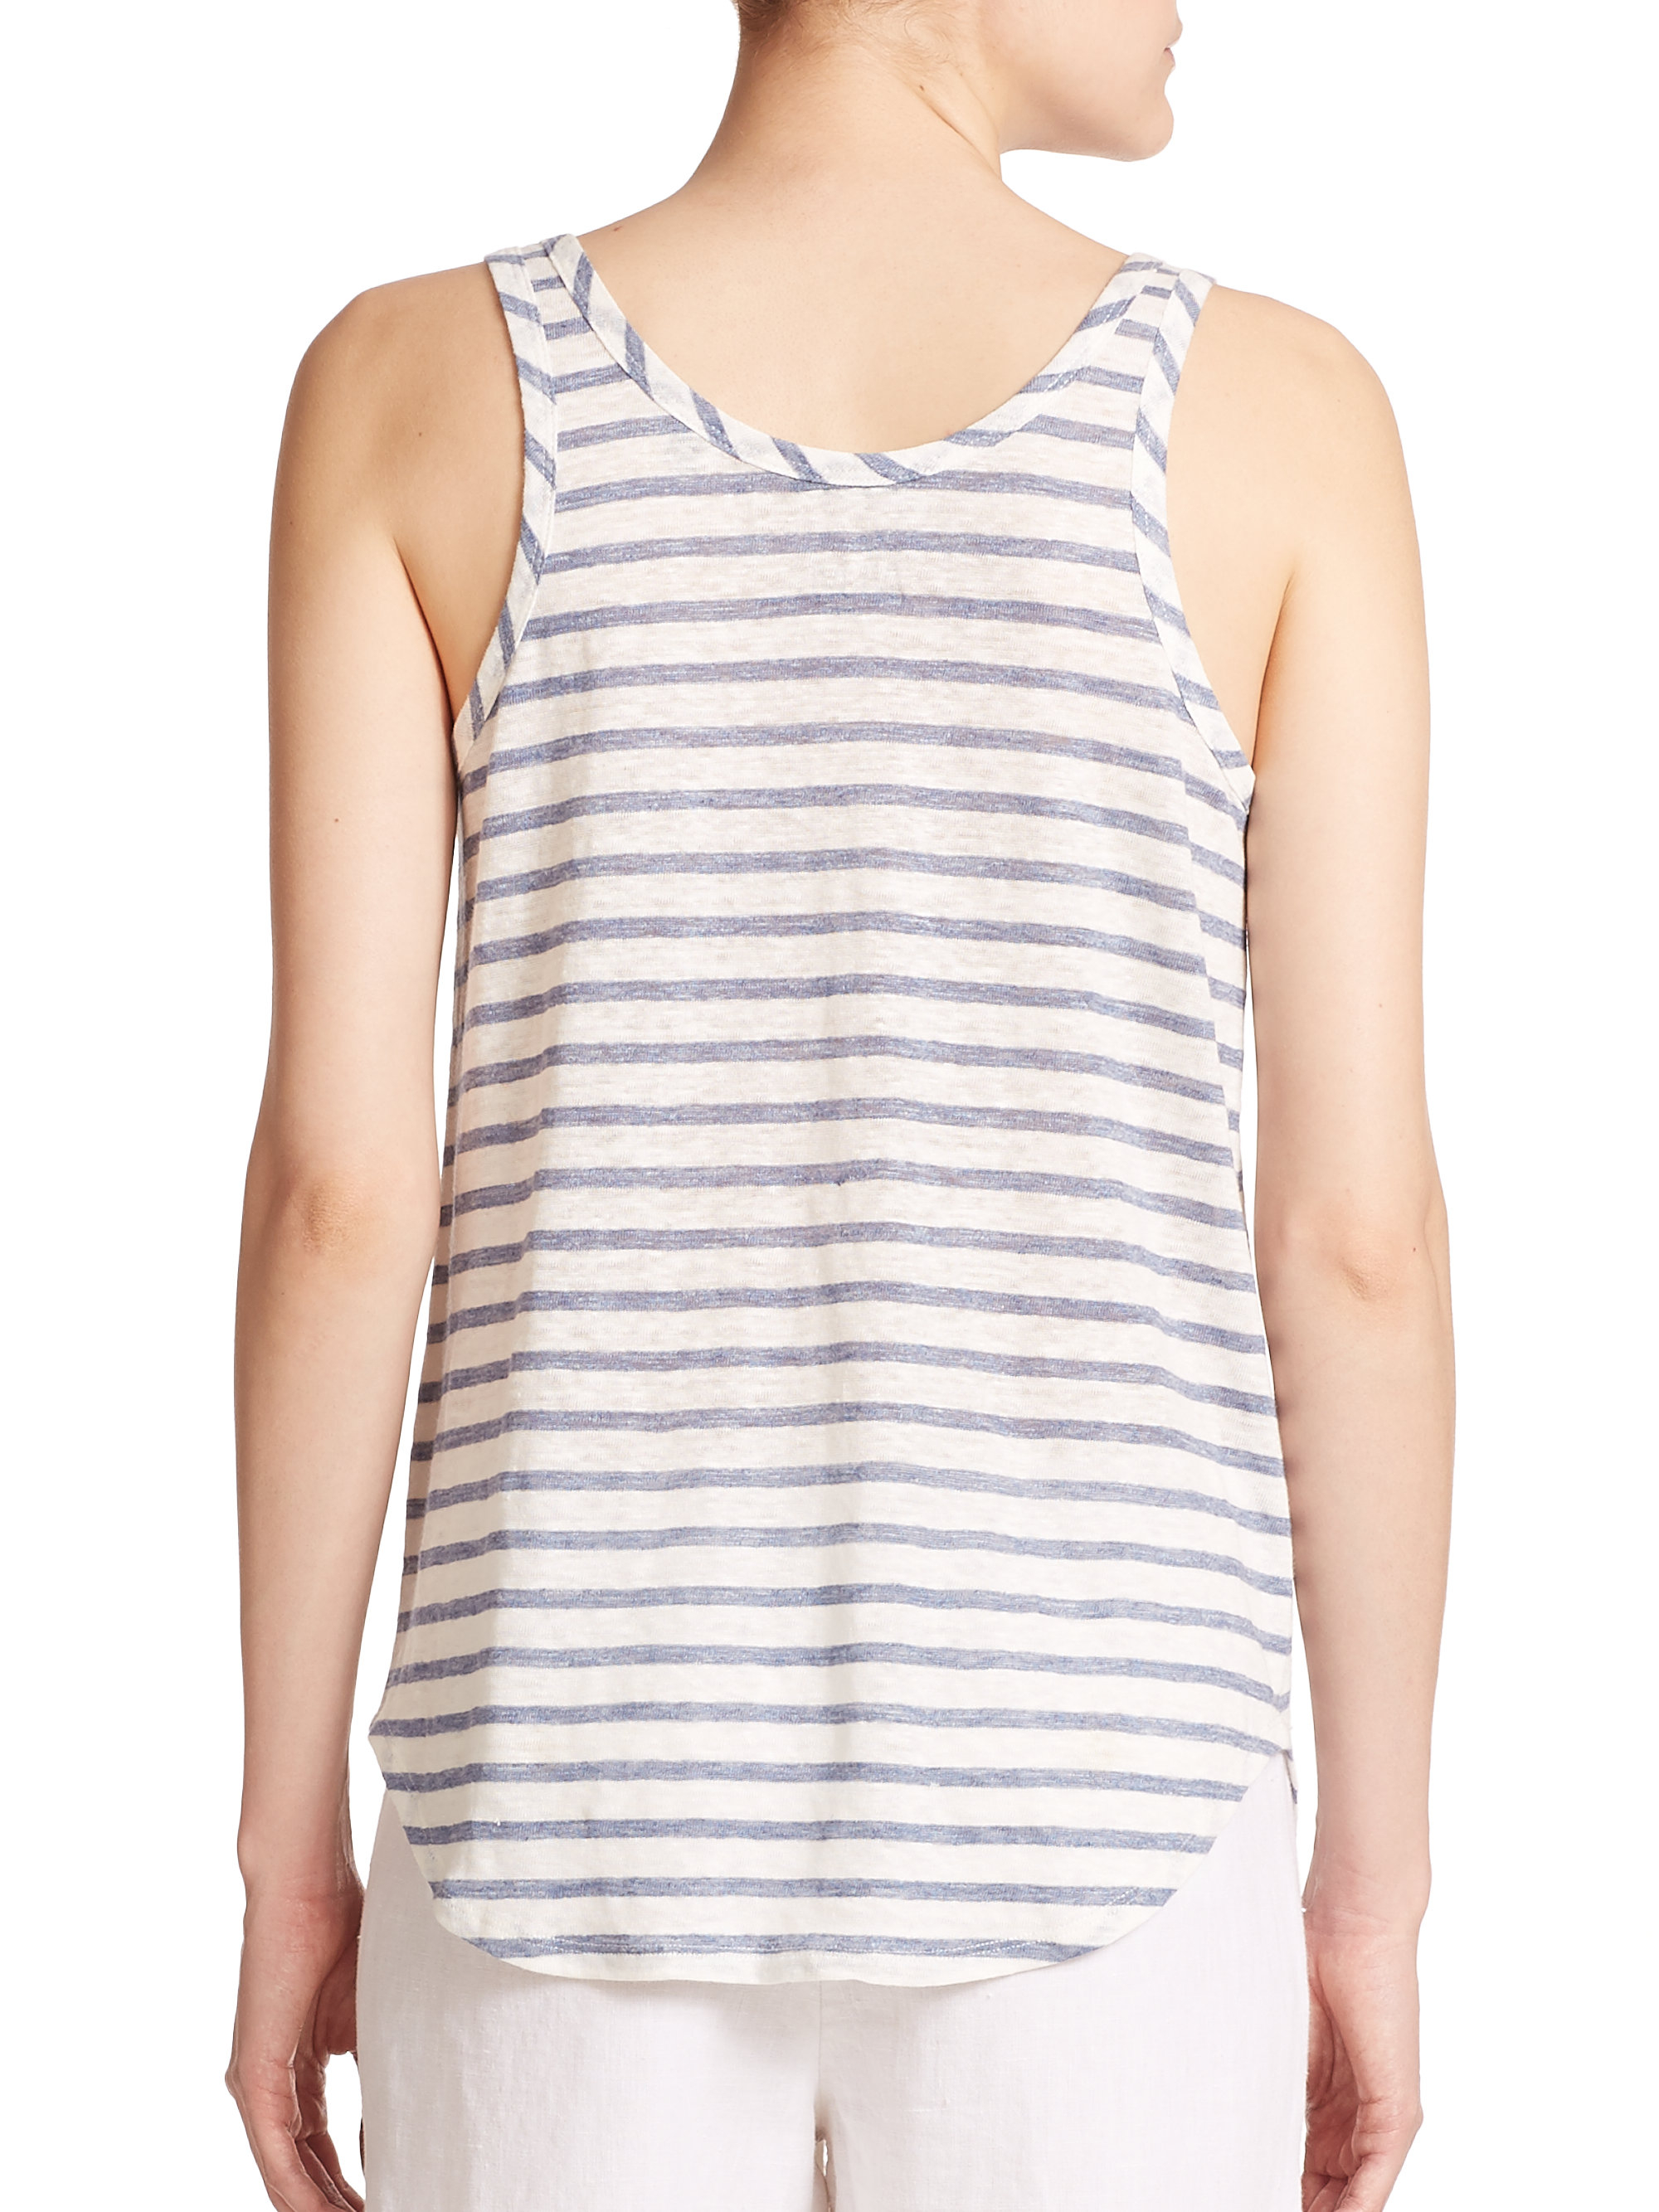 Free shipping BOTH ways on lucky brand striped tank top, from our vast selection of styles. Fast delivery, and 24/7/ real-person service with a smile. Click or call